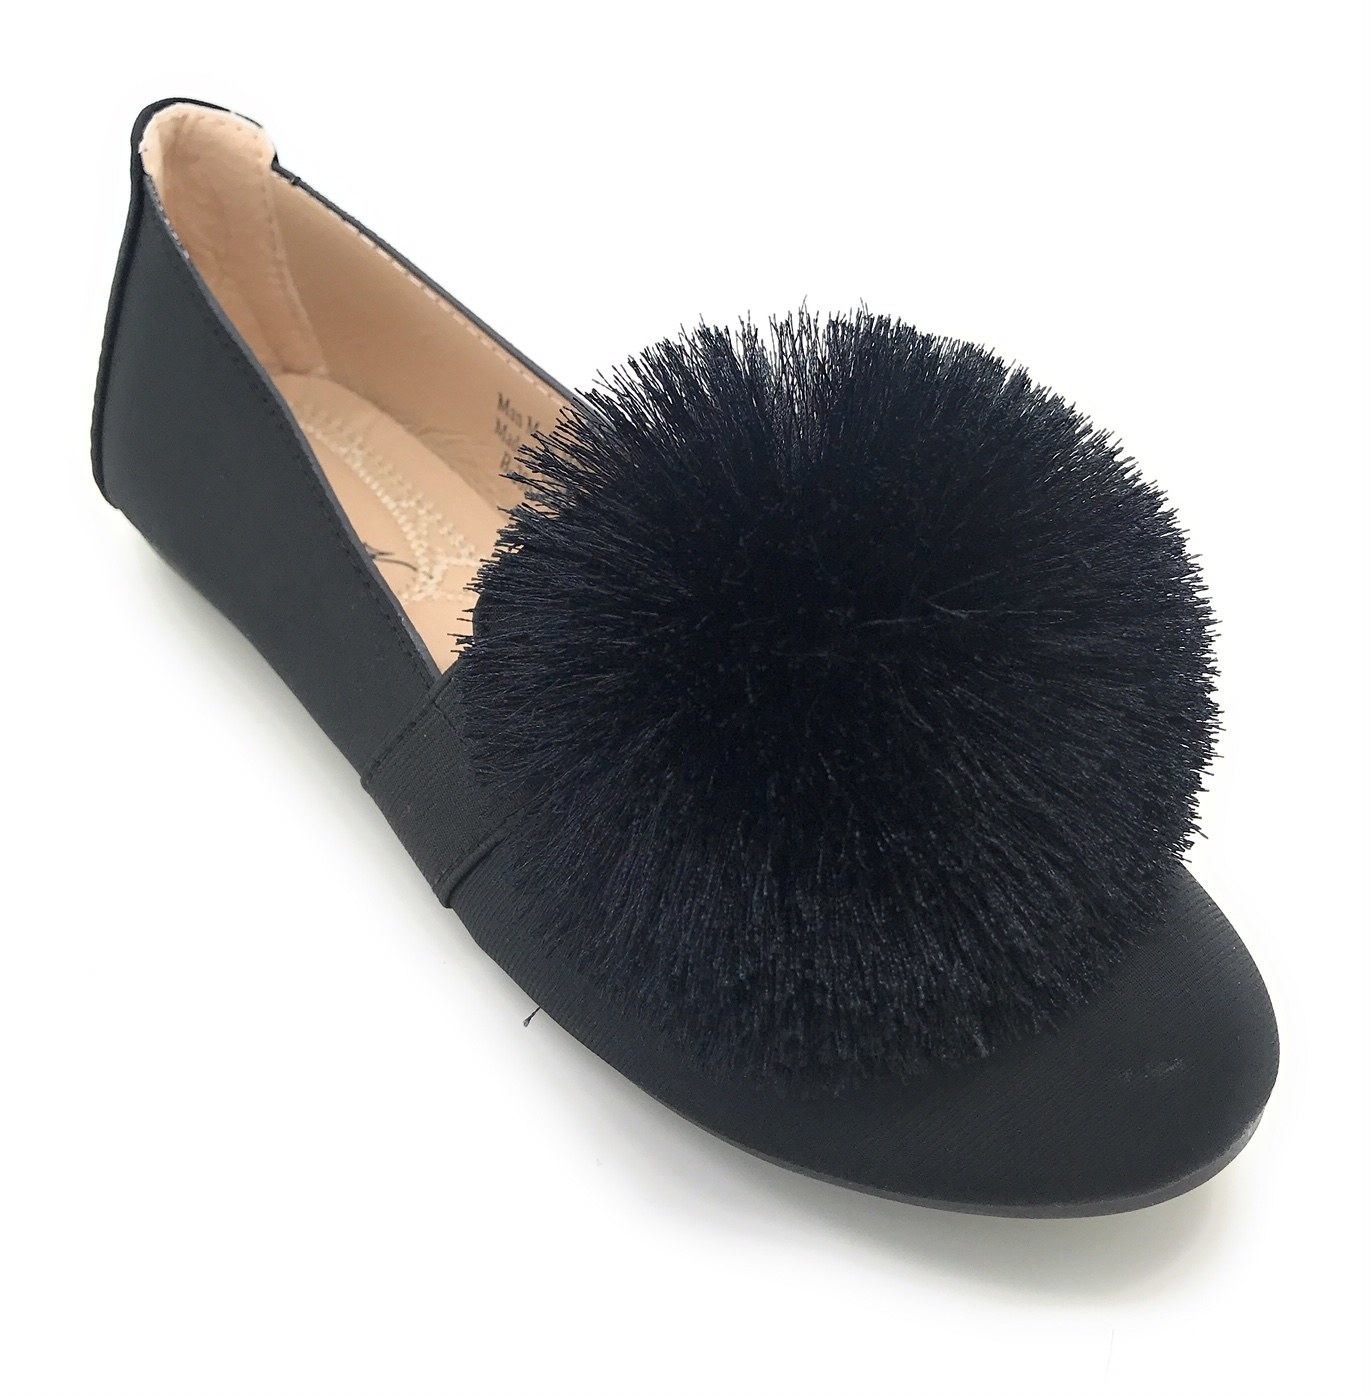 Navy ballerina flats with pom pom